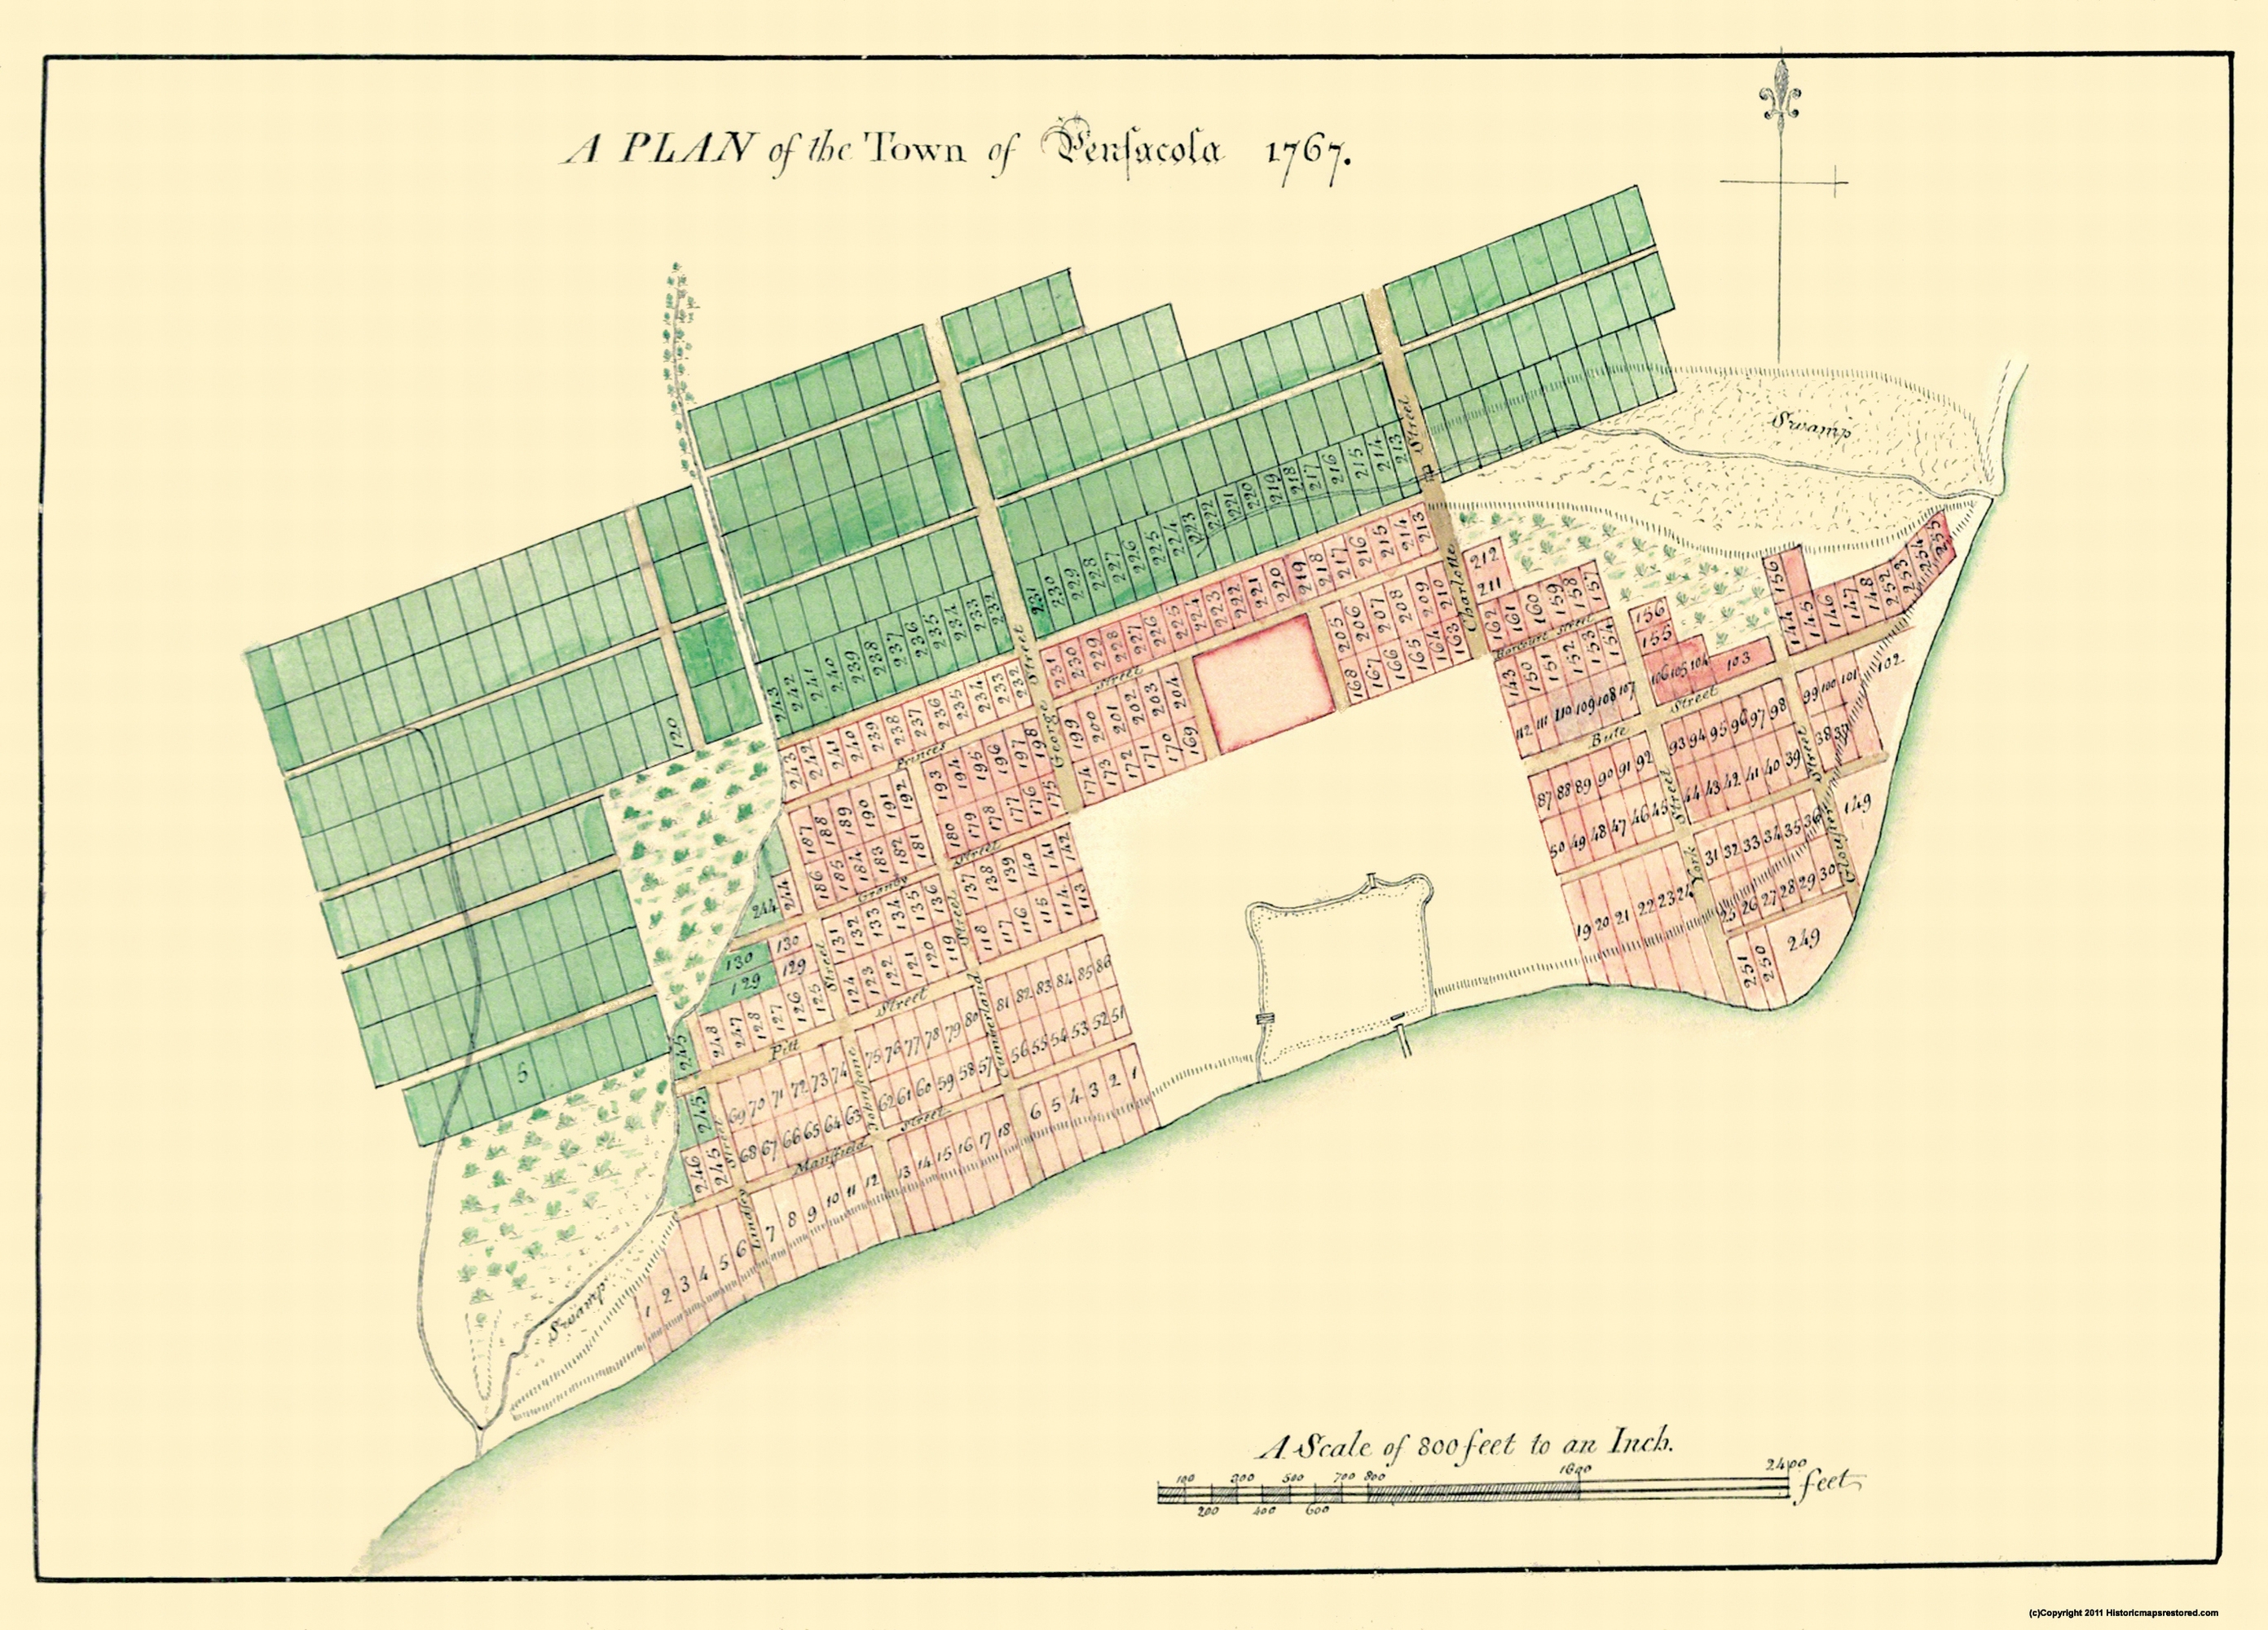 Old City Map Pensacola Florida Plan 1767